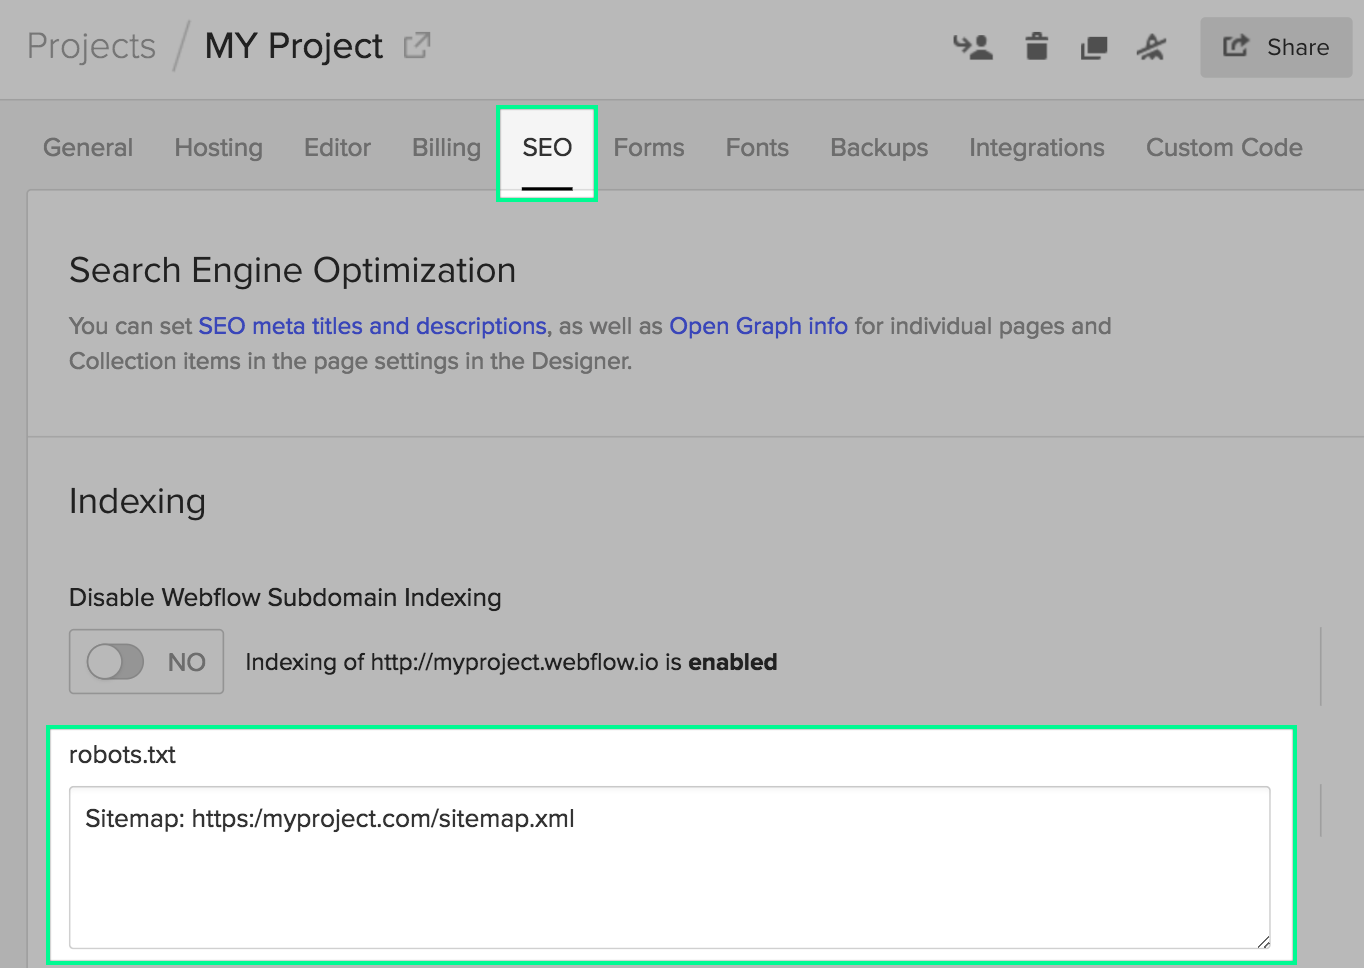 Add a sitemap in the robots.txt file